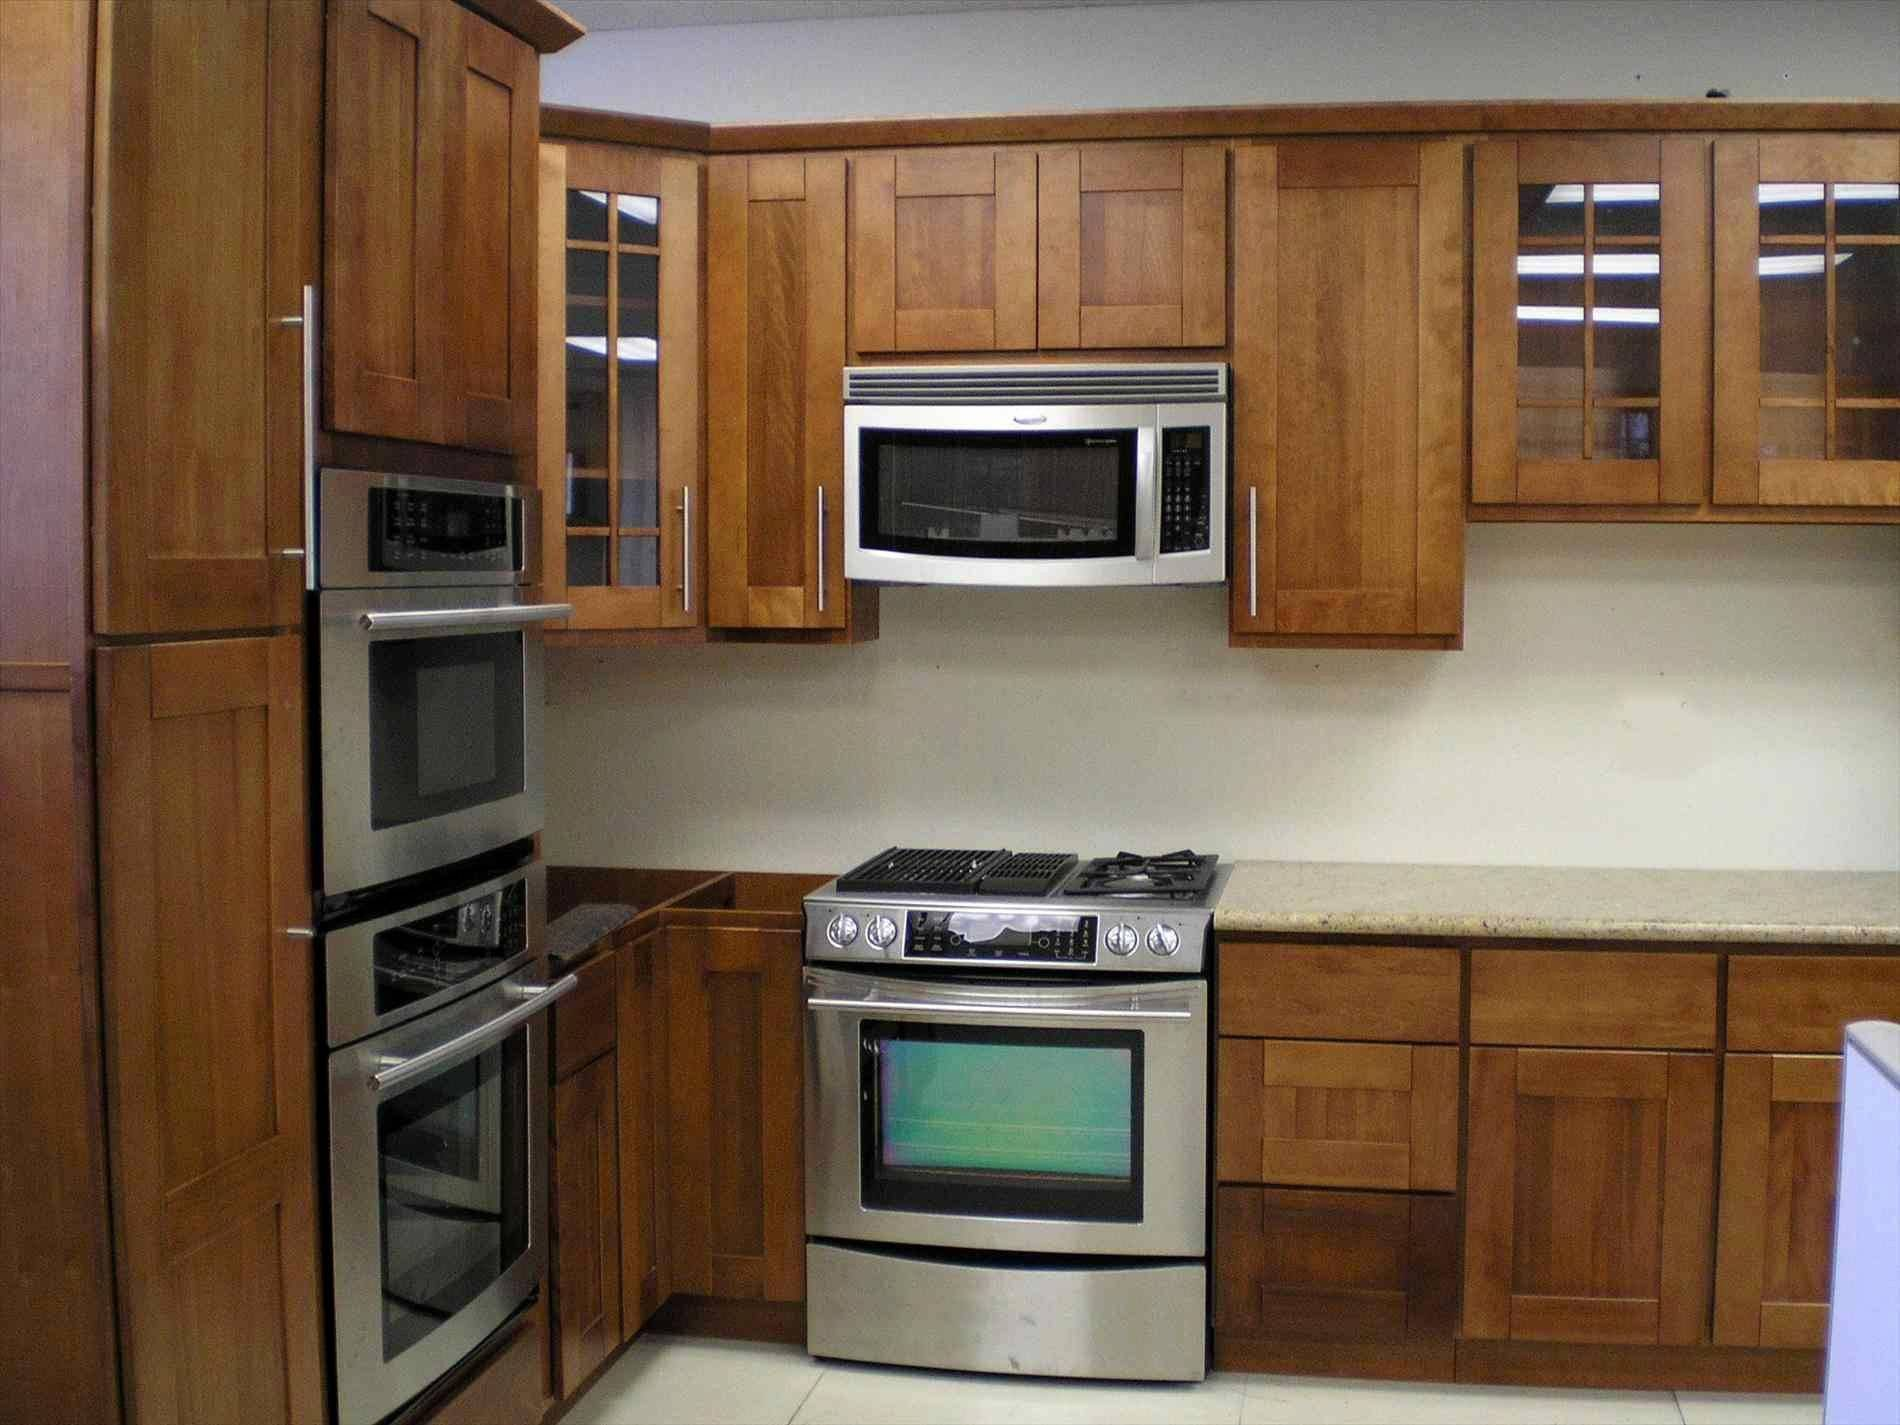 Lovely Kitchen Cabinets Edmonton Kijiji The Most Brilliant Along With Gorgeous Kitchen Cabinets Edmonton Kijiji For Really Encourage Your Property Existing P